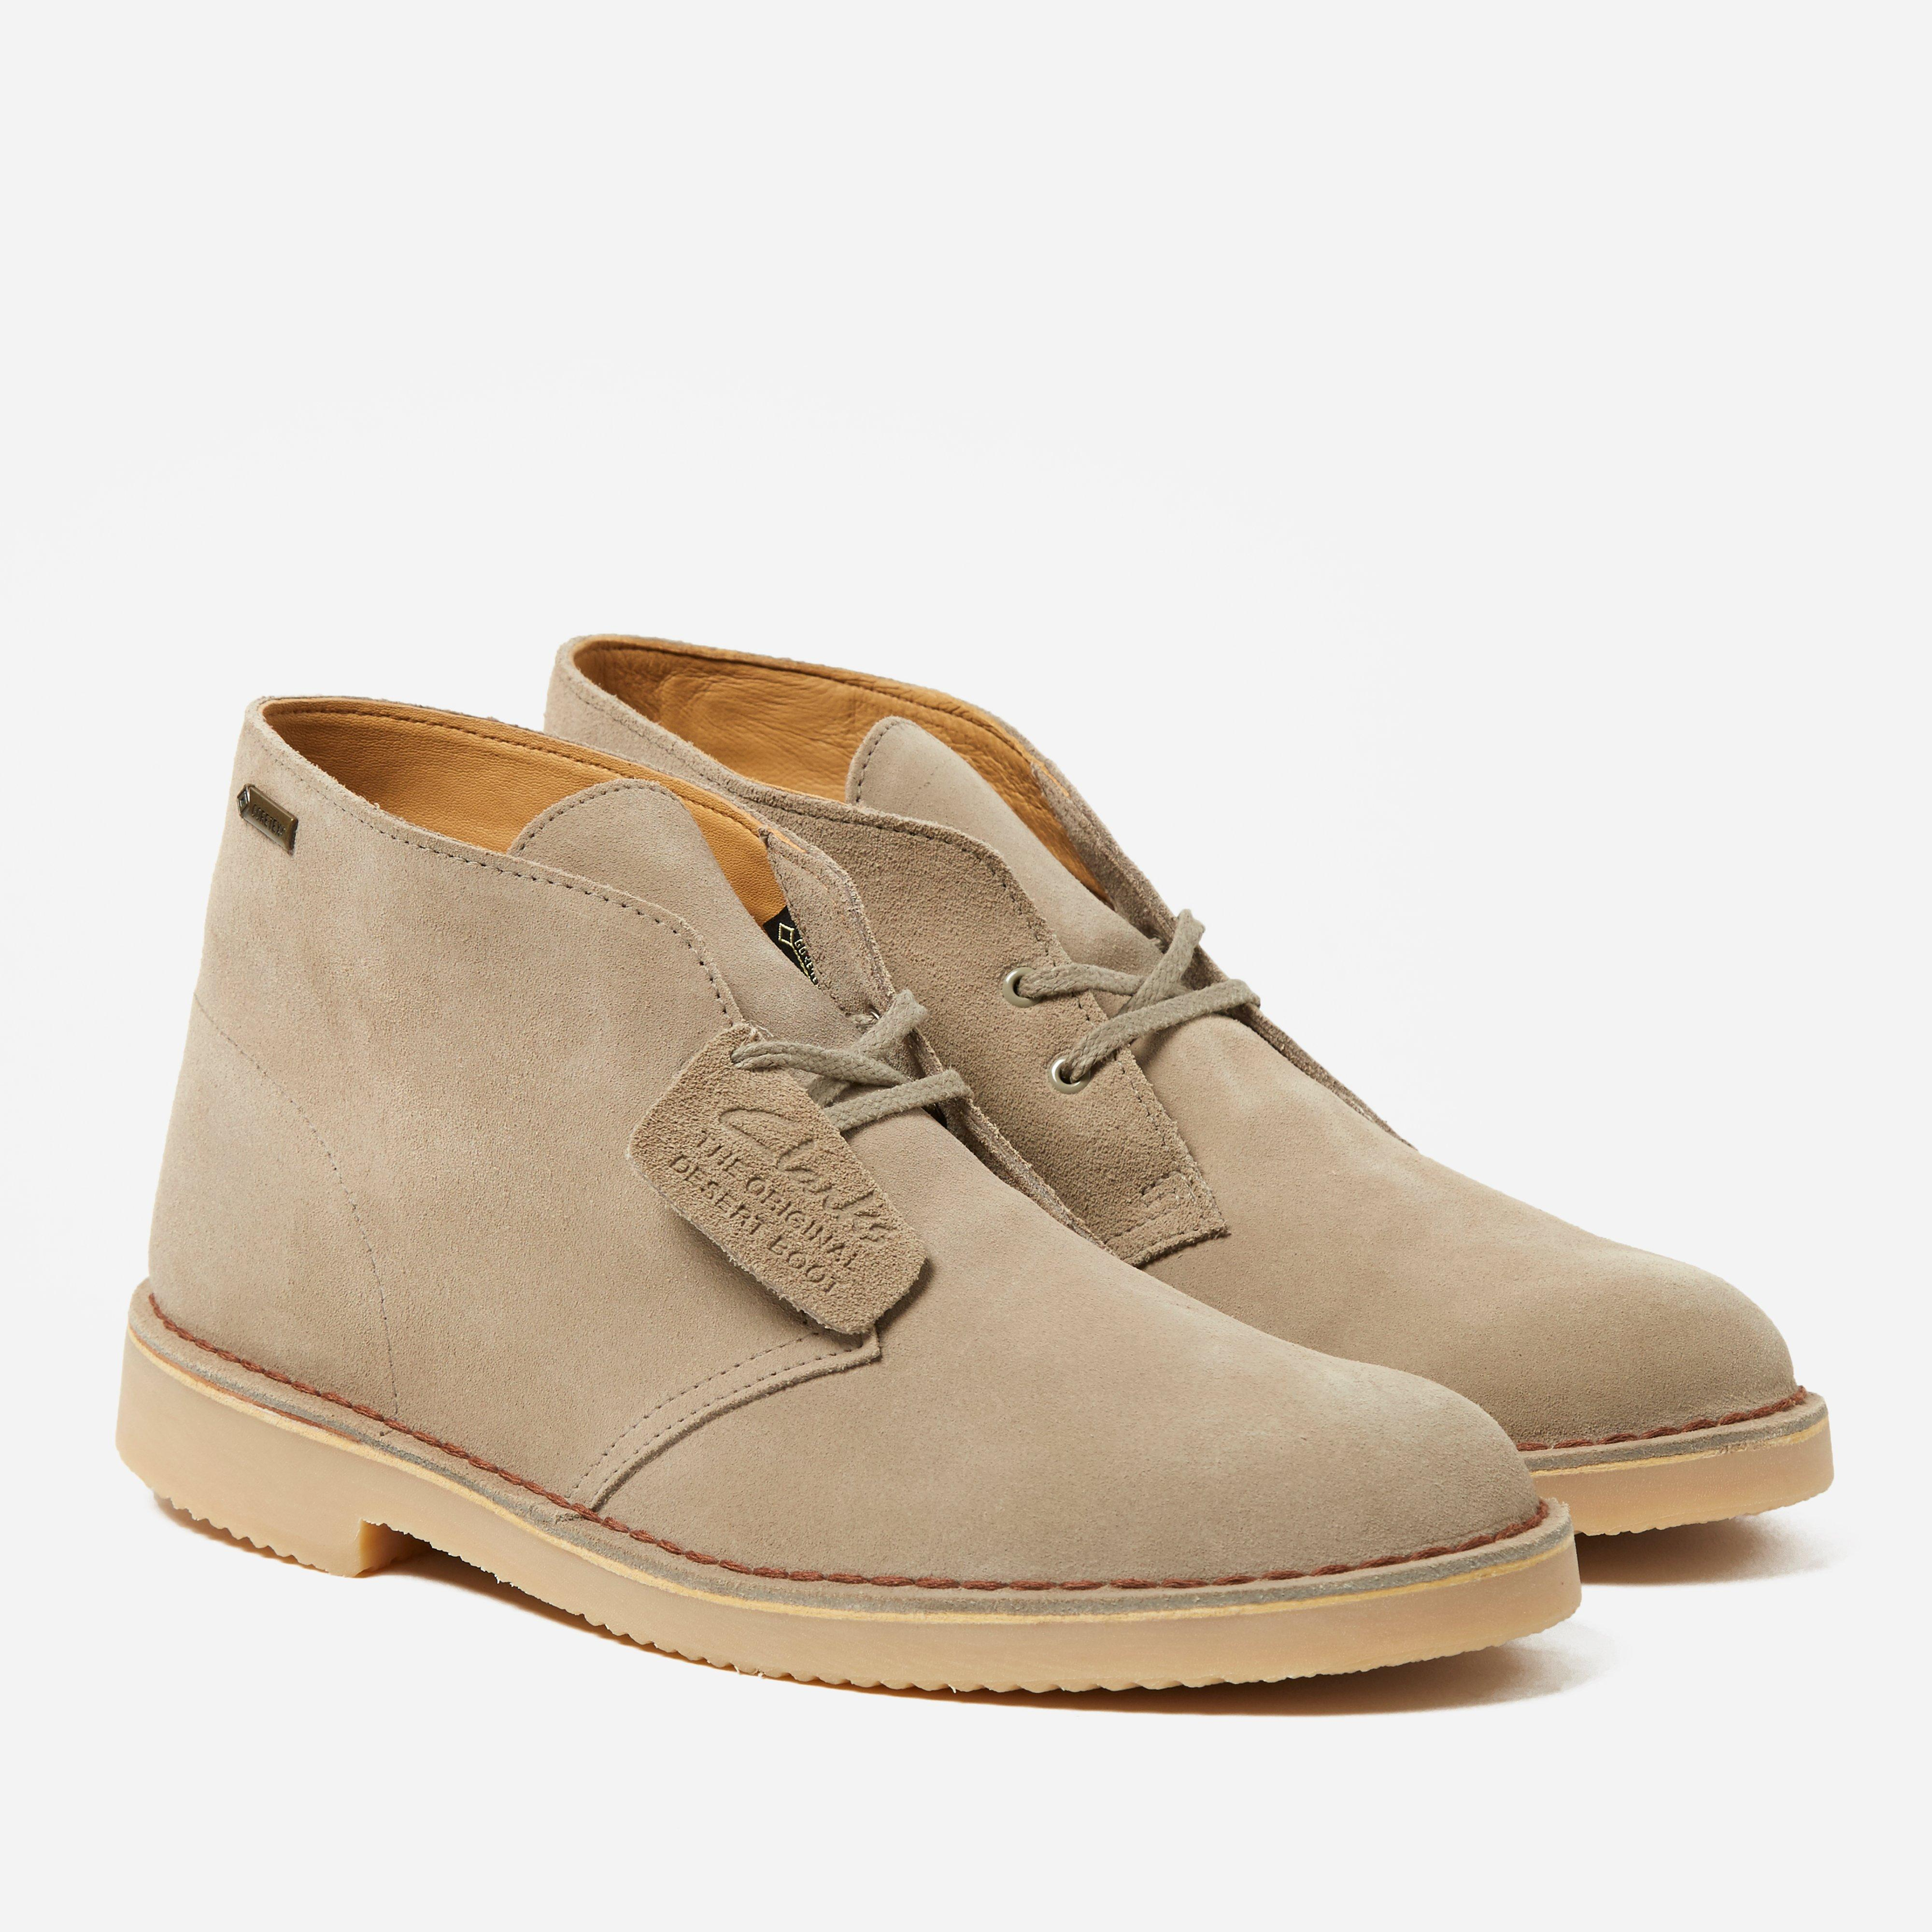 Clarks Originals Desert Boot GTX